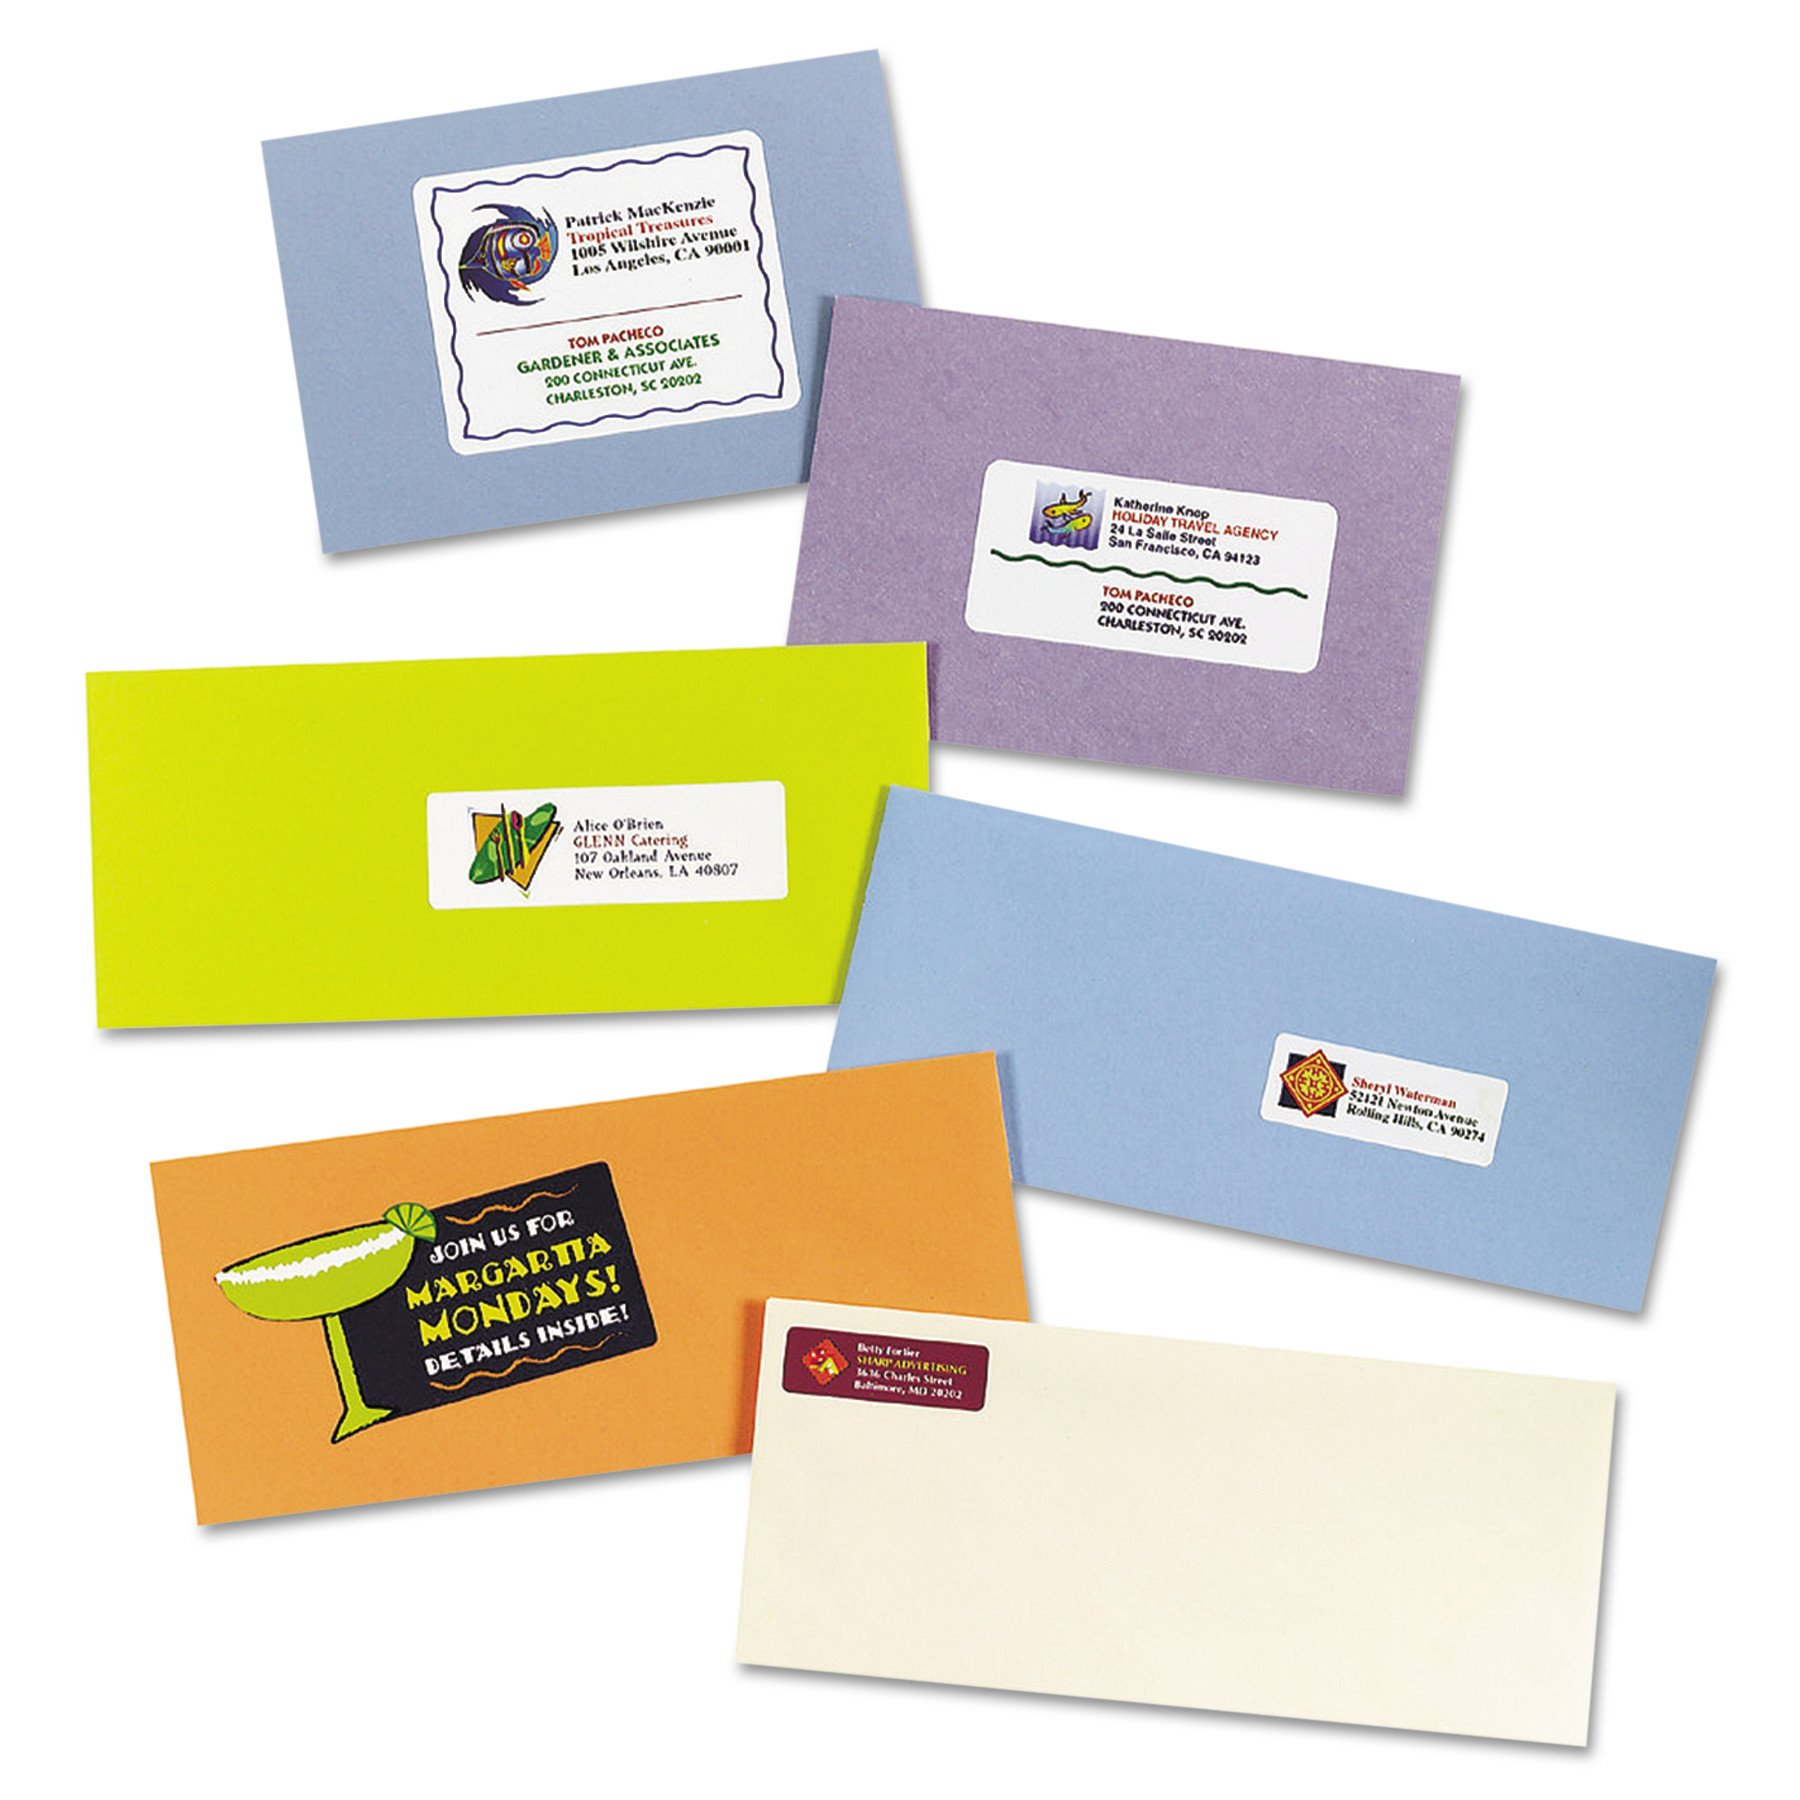 Avery Address Labels For Ink Jet Printers 8250 (20 Sheets) by Avery (Image #4)